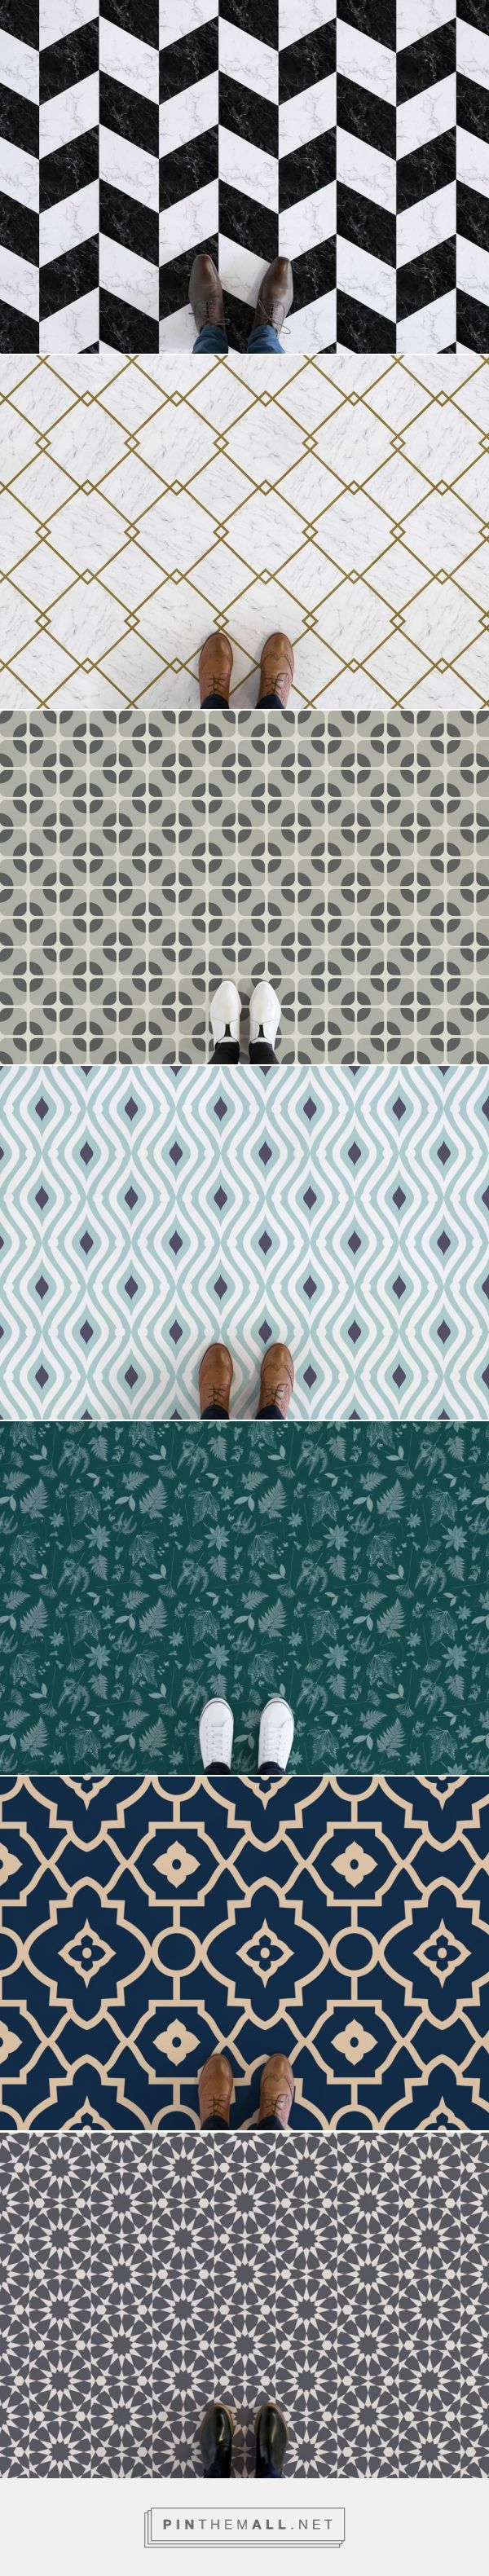 Vinyl Flooring Collection that is biggest 2017 trends - The Architects Diary - created via https://pinthemall.net